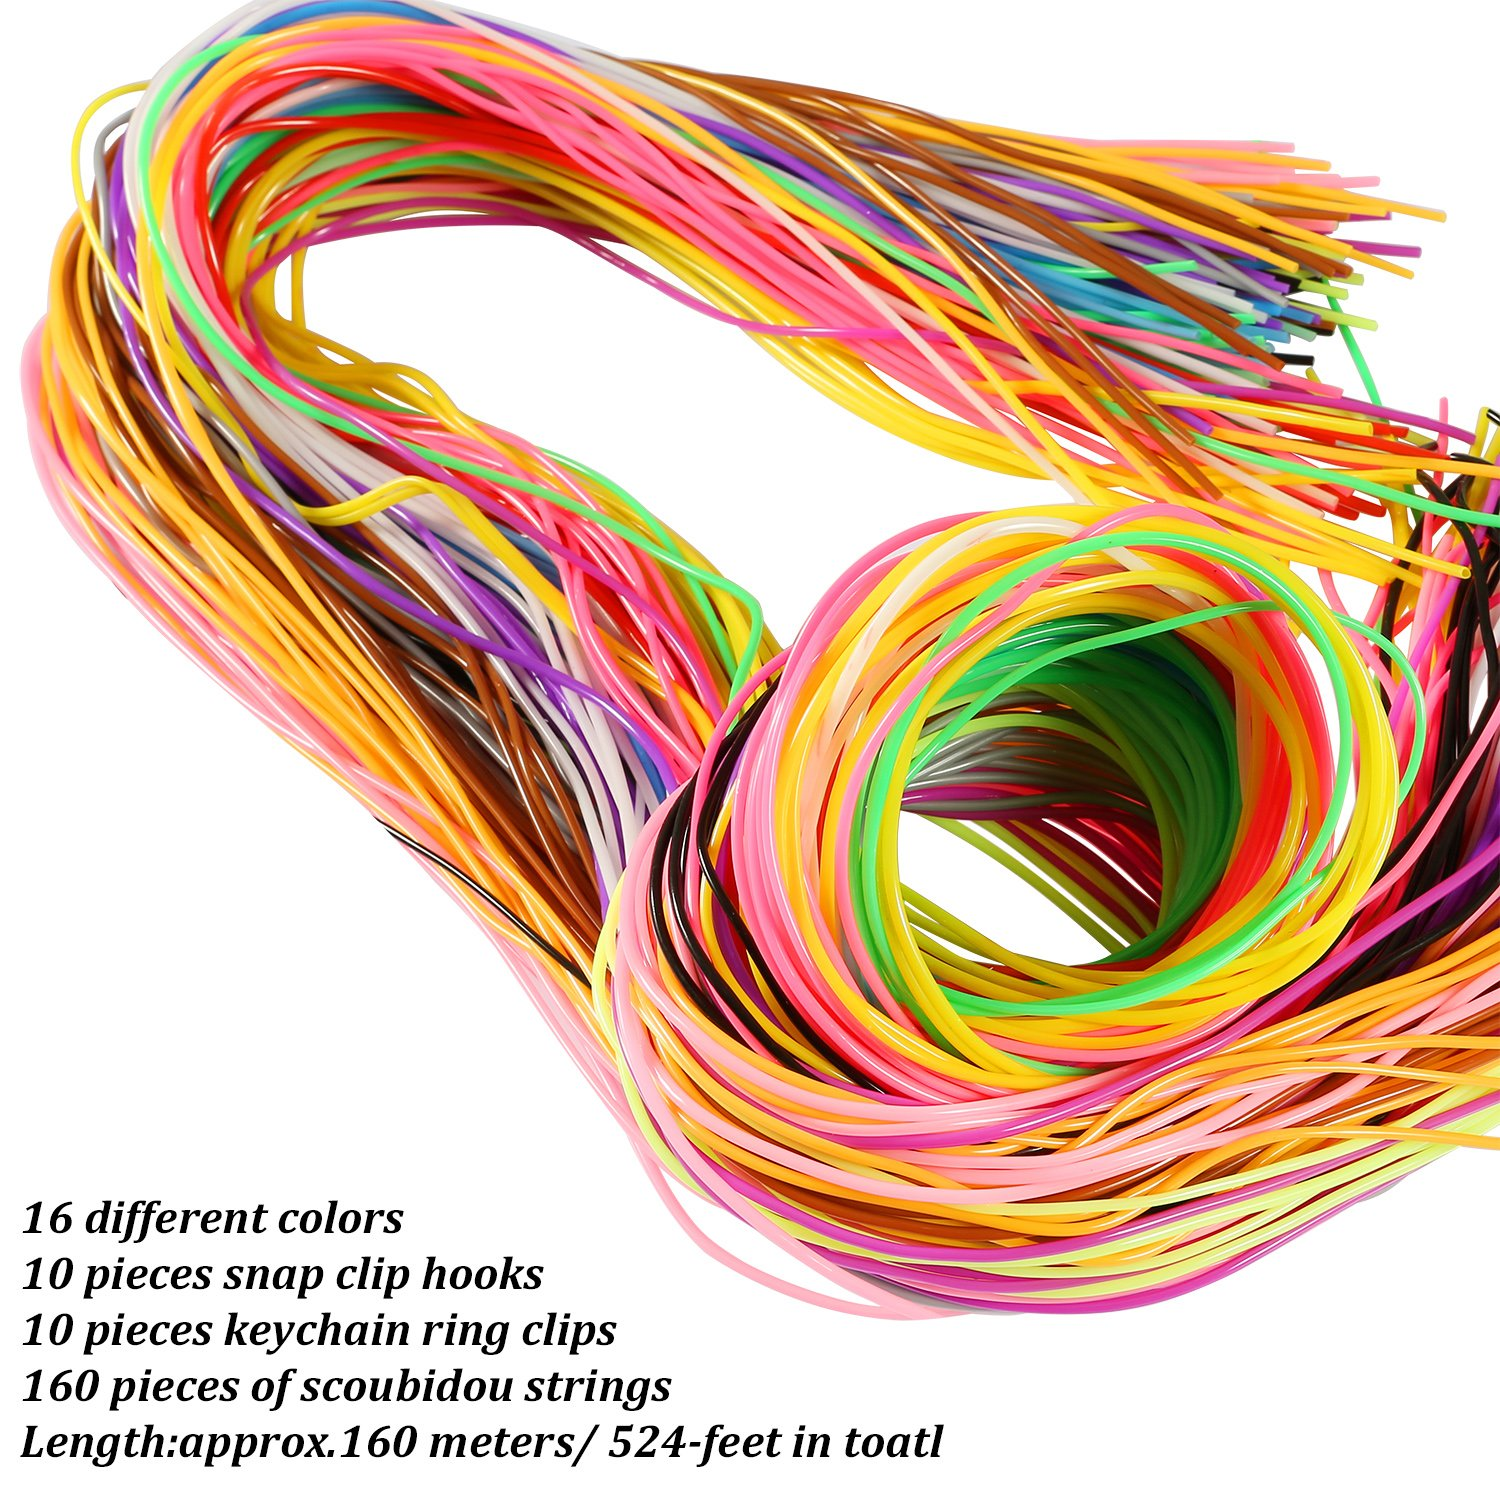 525-Feet,16 Colors Coobey 160 Pieces Scoubidou Strings DIY Craft Gimp String with Snap Clip Hooks Keychain Ring Clips Plastic Lacing Cord for Jewelry Making